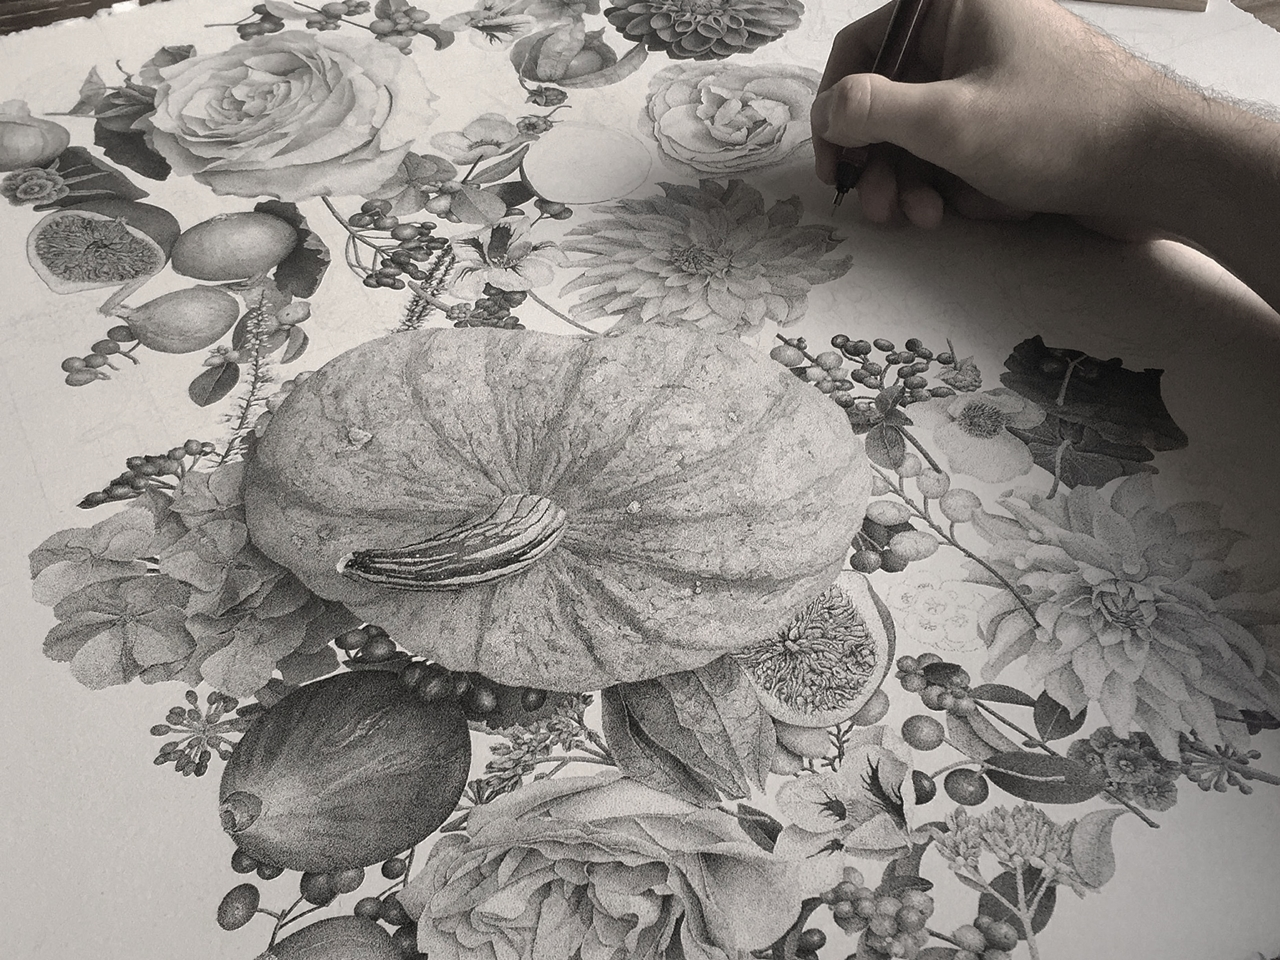 7-million-dots-and-370-hours-later-i-present-my-piece-called-autumn__02